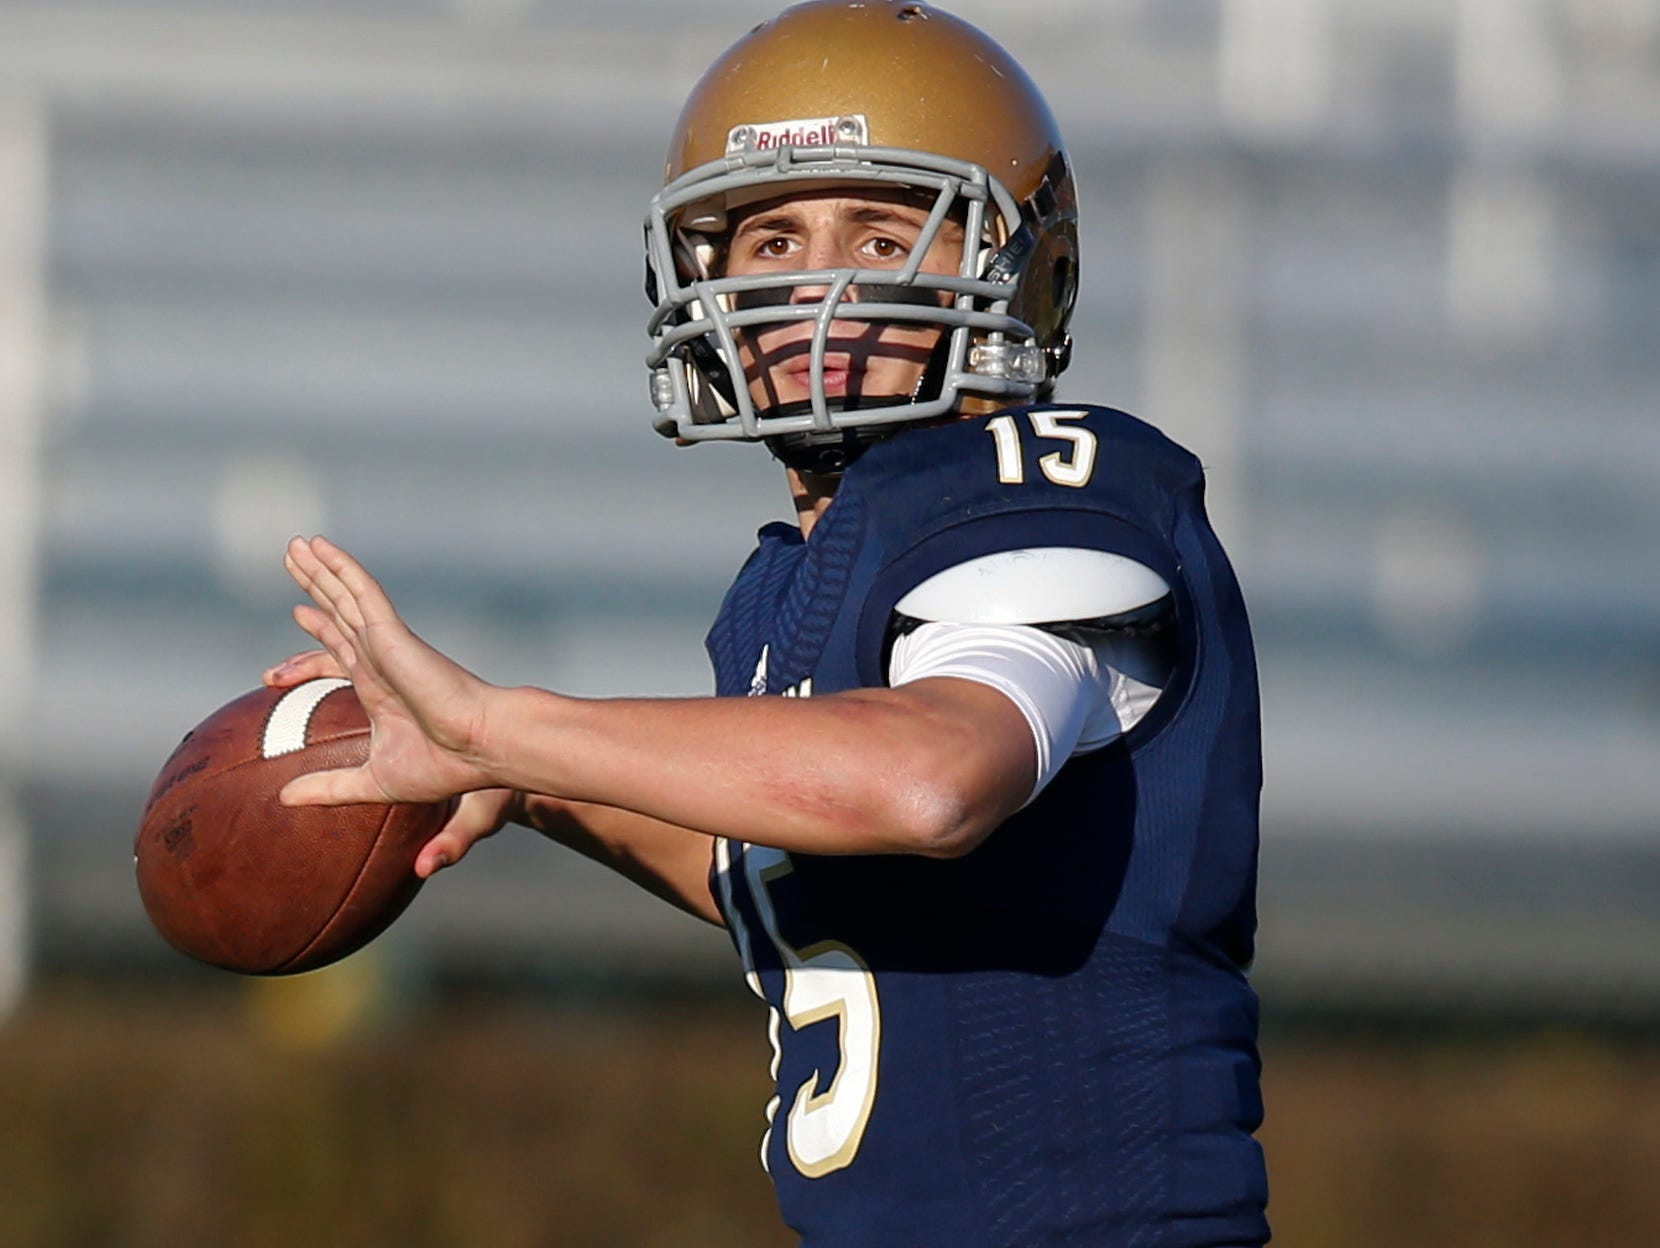 Zach Gwynn returns at quarterback for Salesianum after passing for three TDs in his only start - a 32-26, overtime loss to Smyrna in the DIAA Division I championship game.